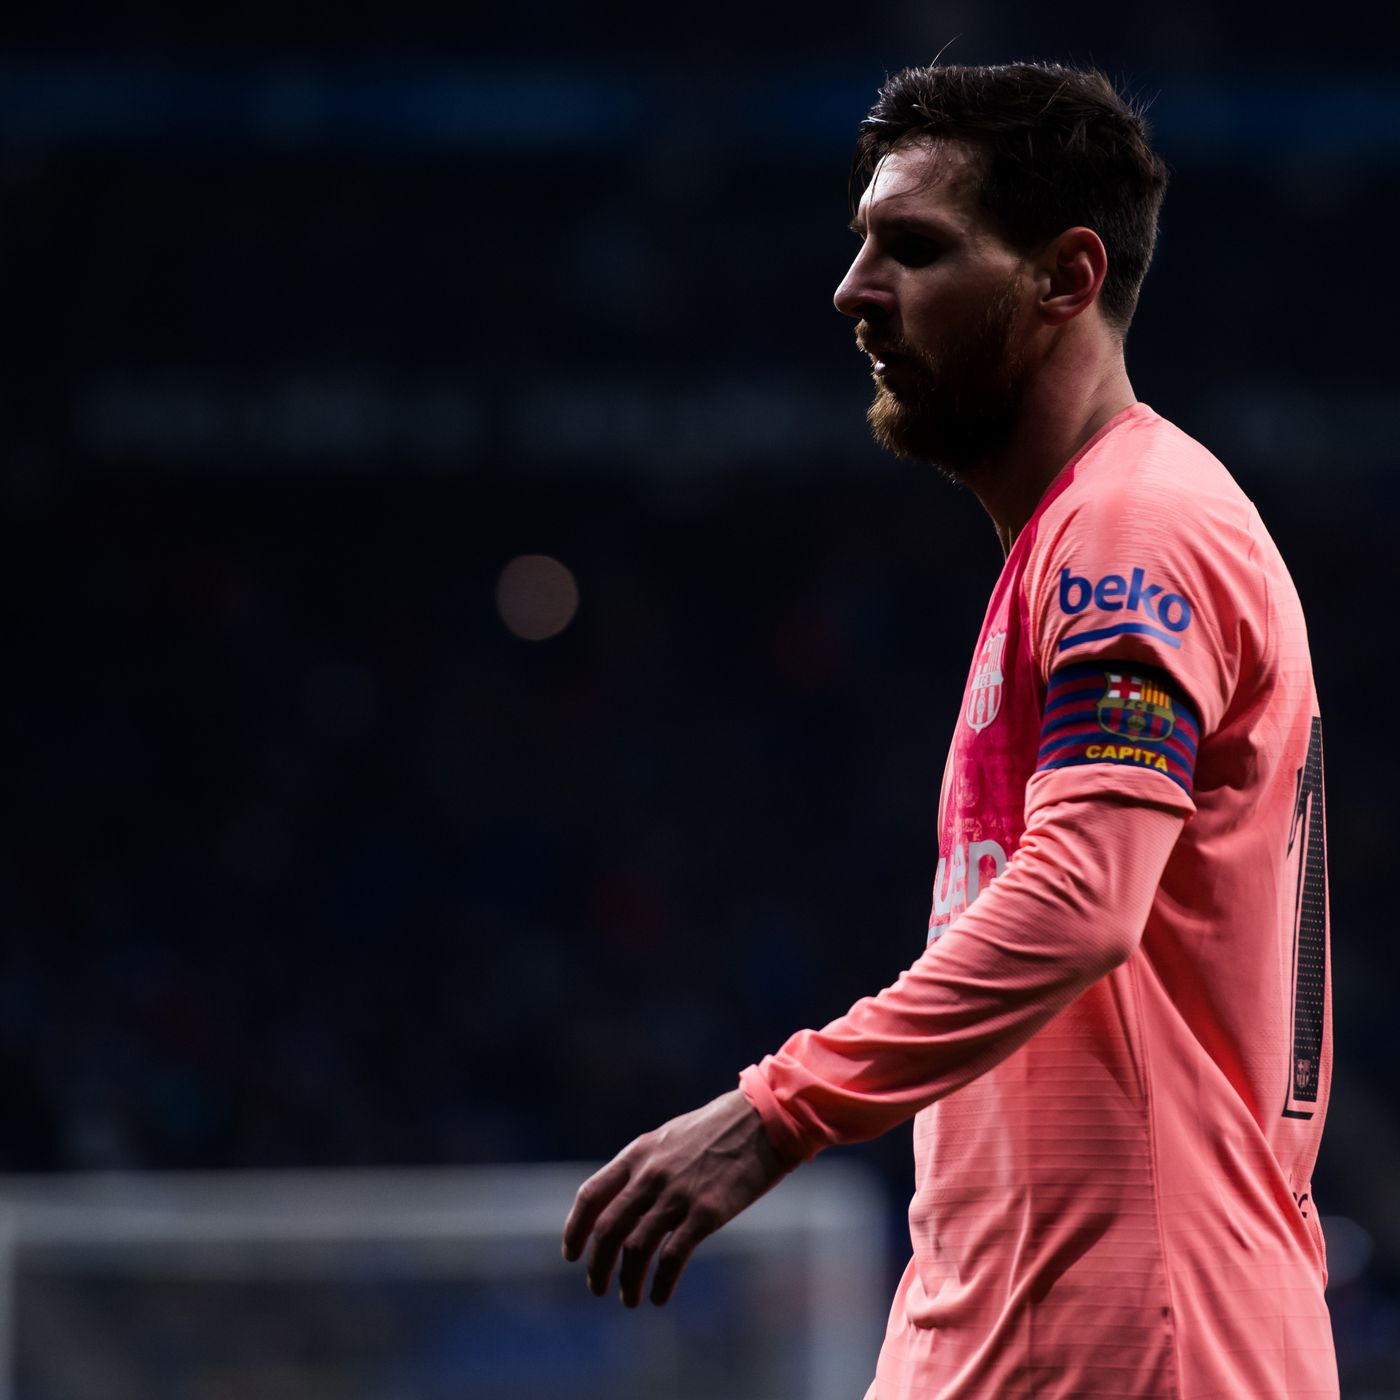 new pictures of barcelona s pink third kit for 2020 21 emerge barca blaugranes pink third kit for 2020 21 emerge